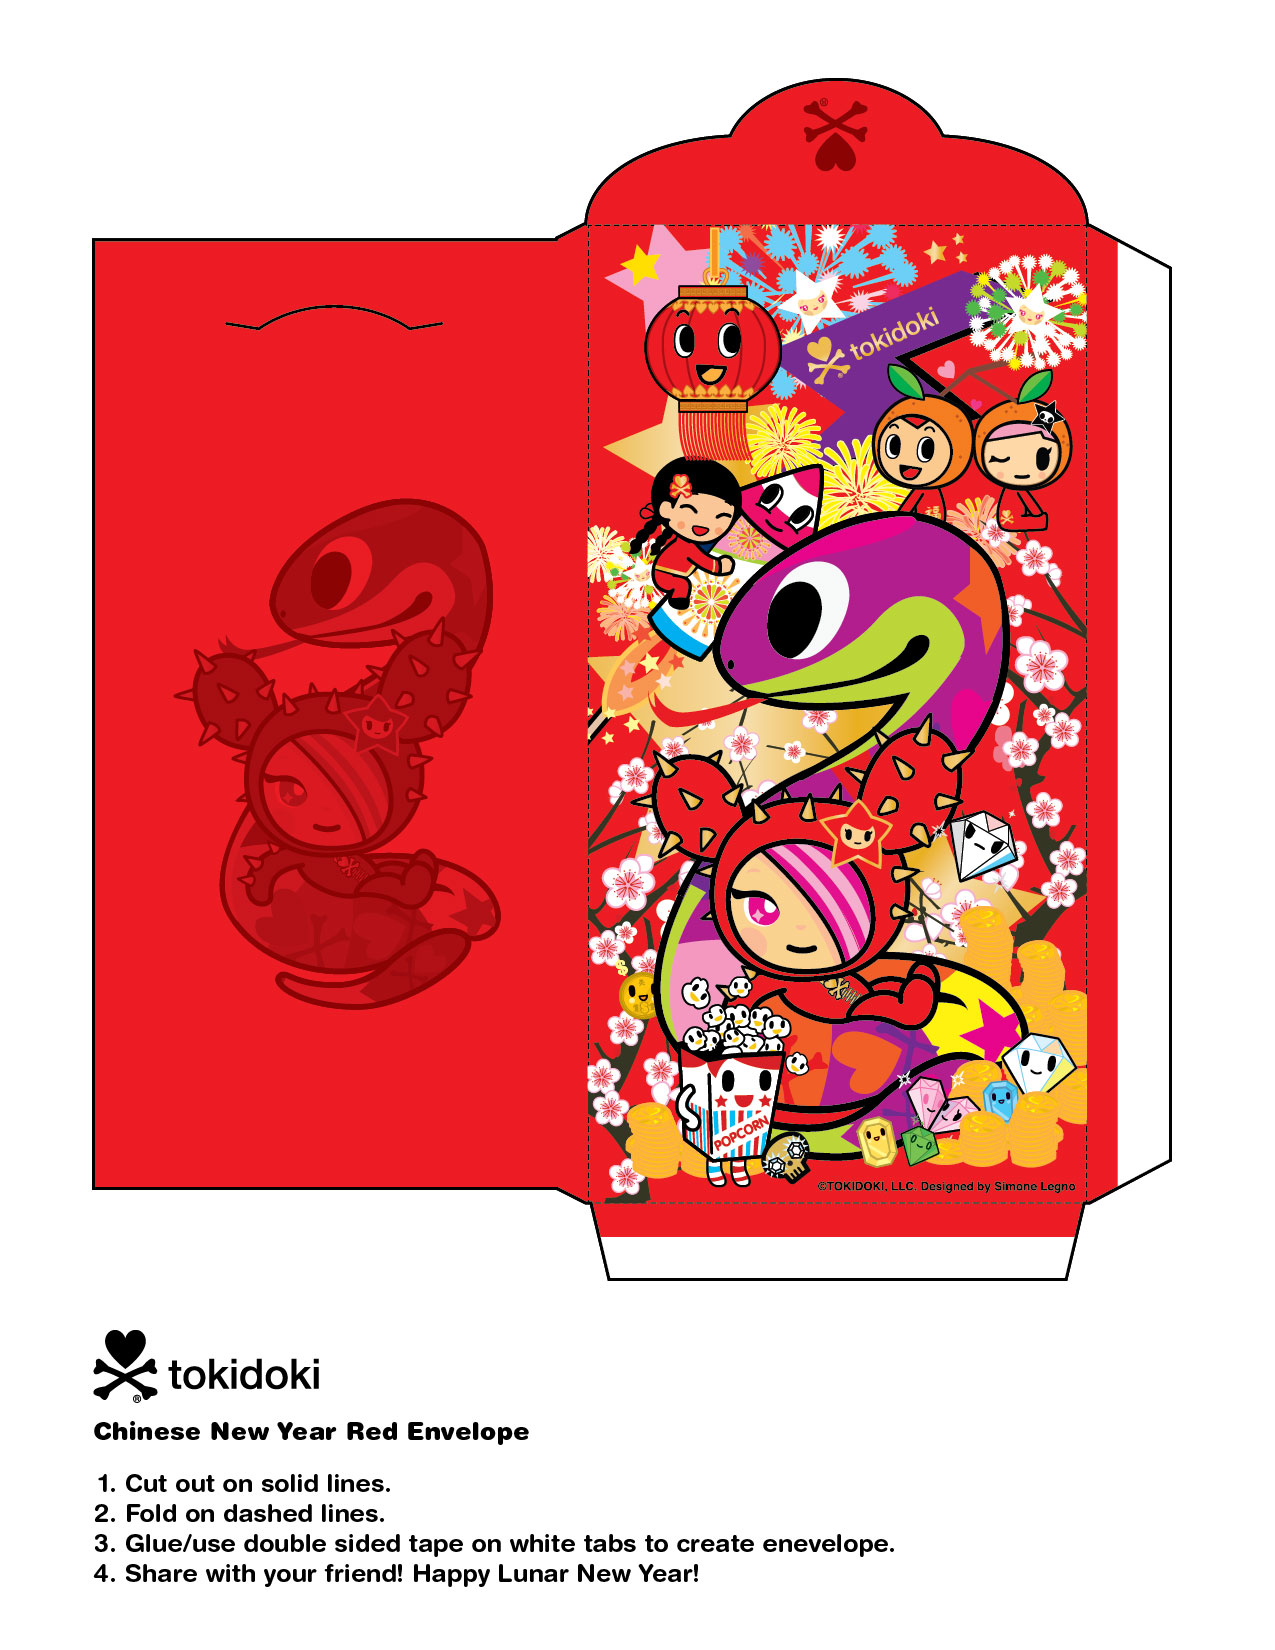 Happy Year of the Snake! 1